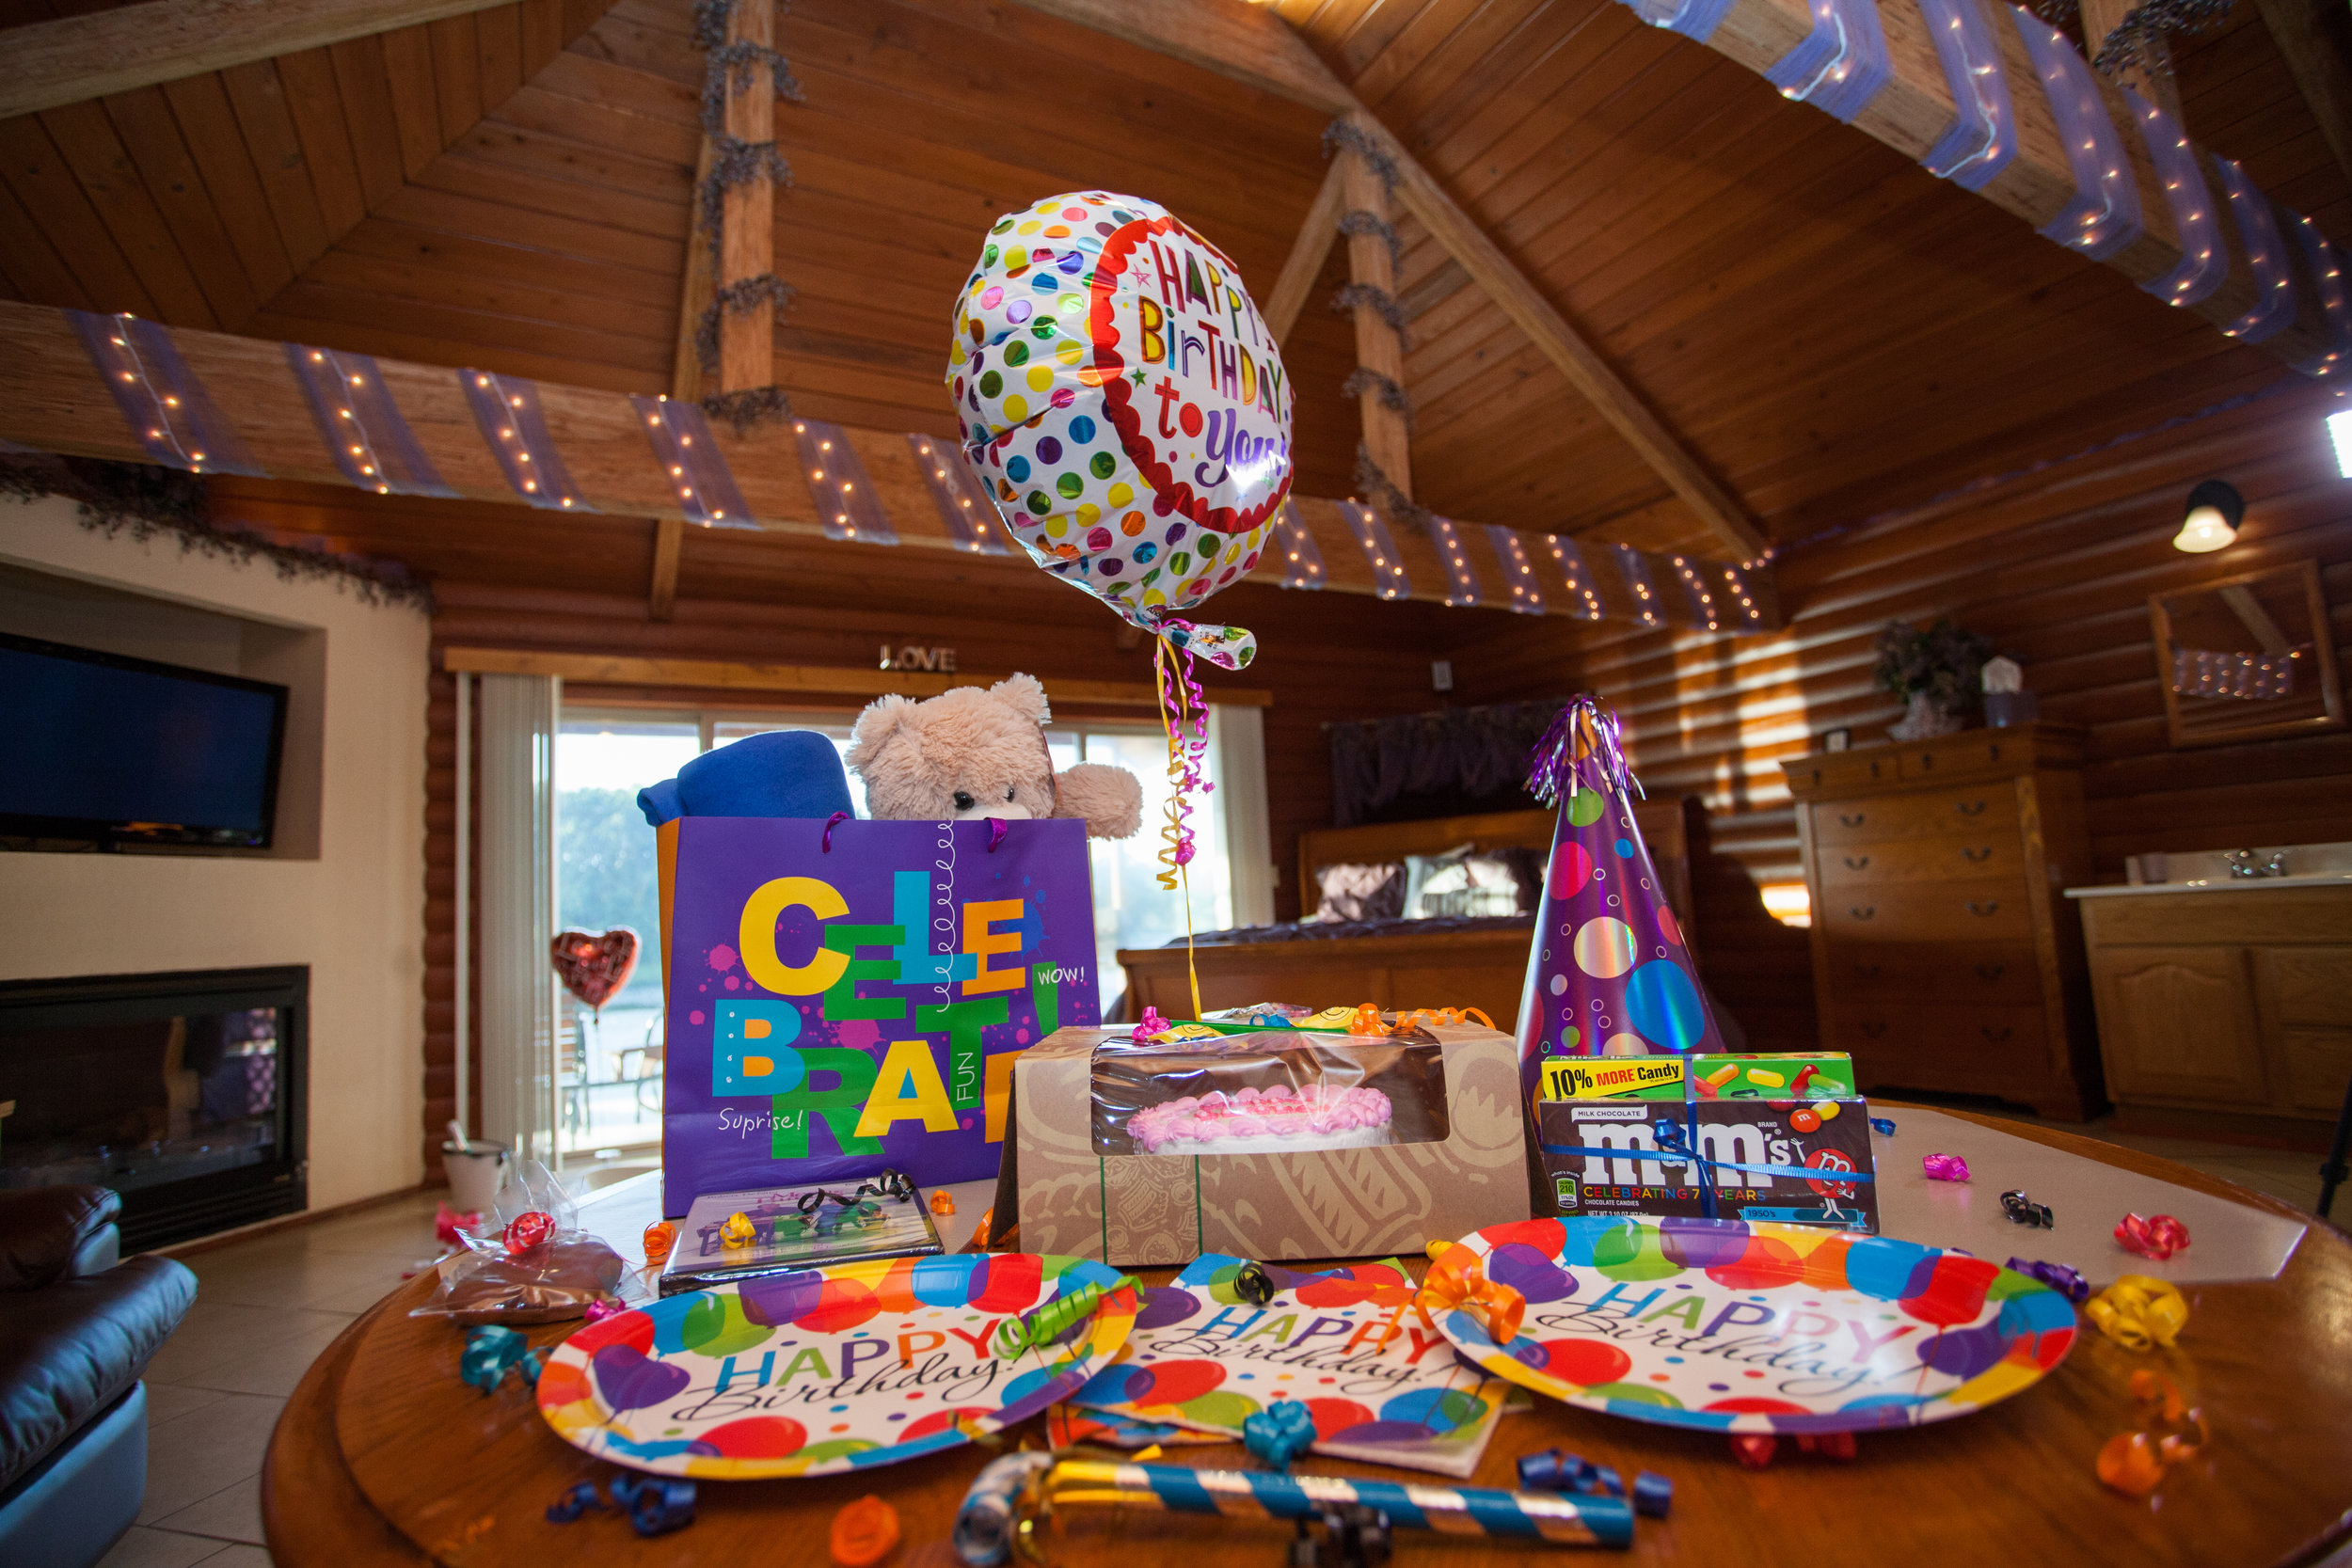 Birthday add-on package from Serenity Springs.